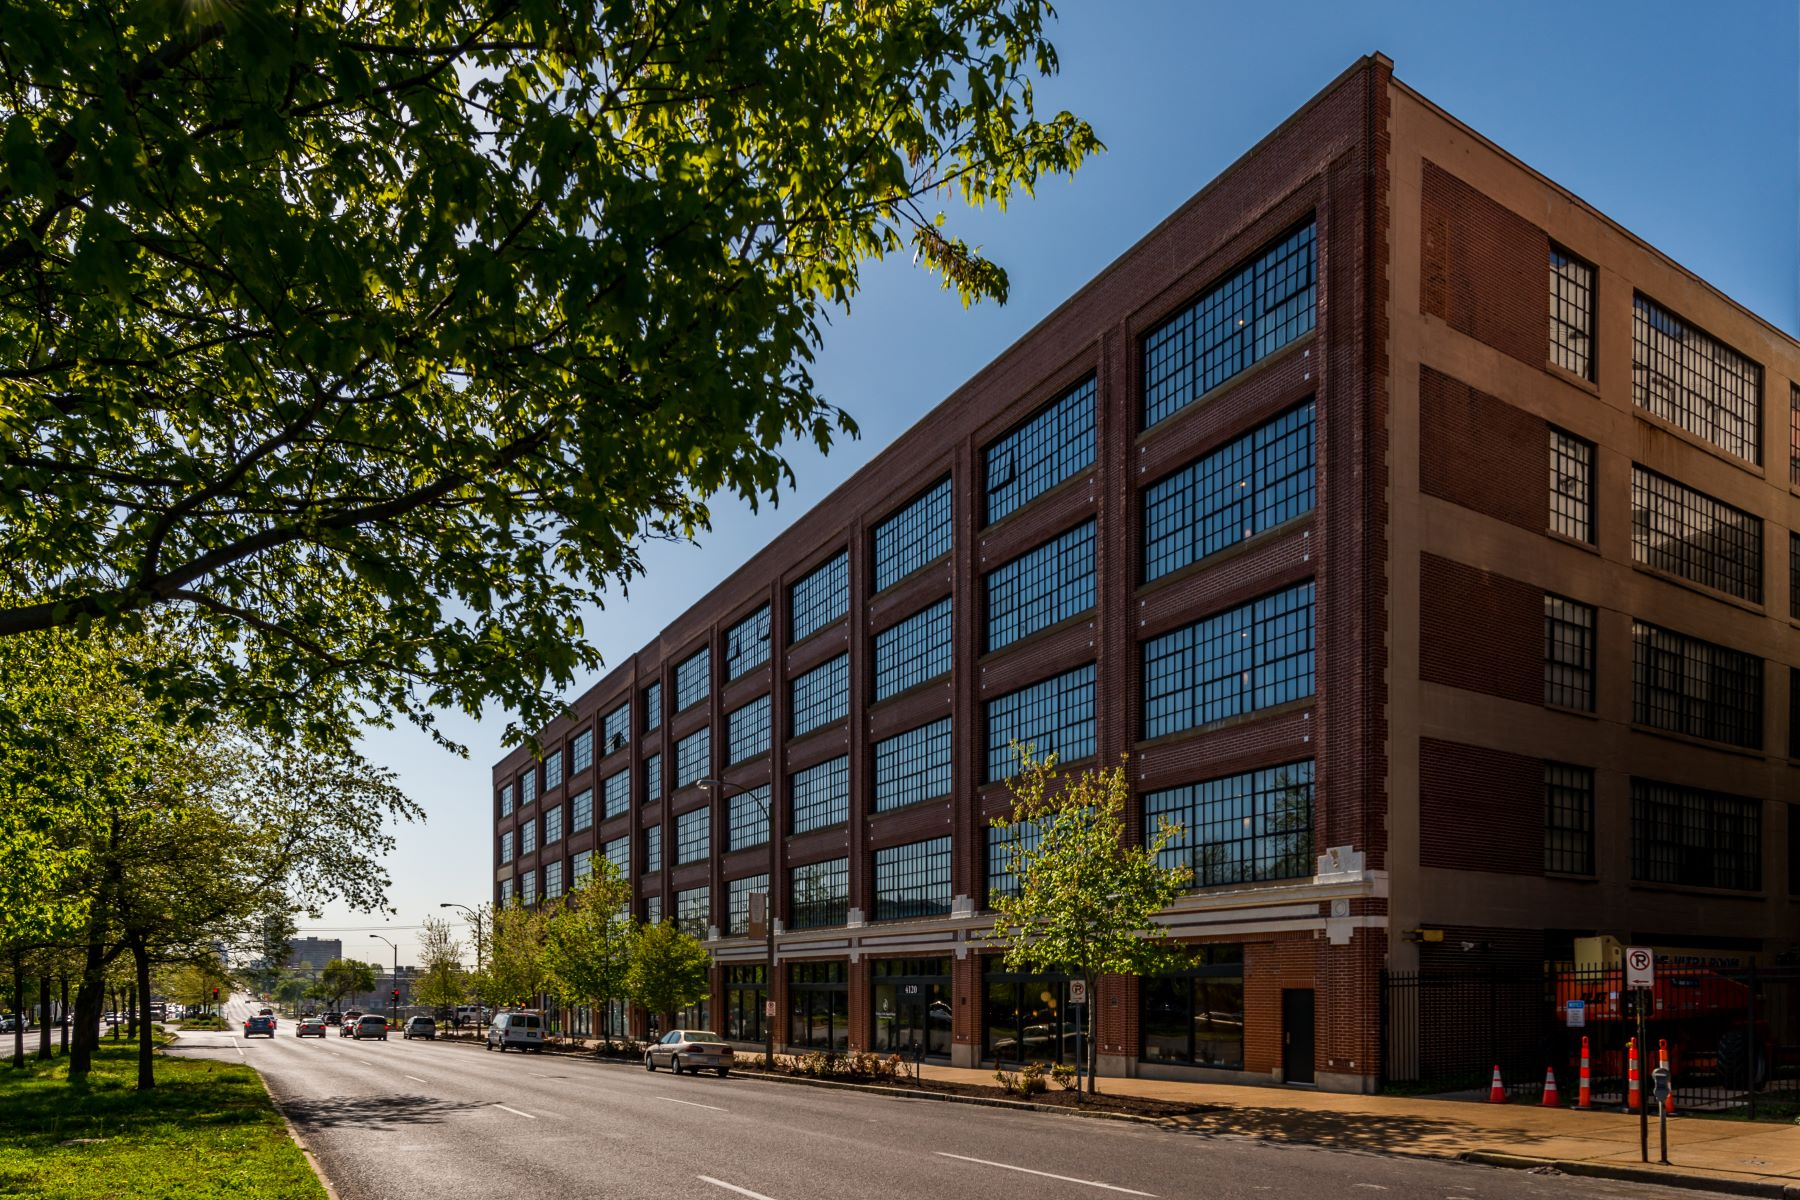 Property for Sale at West End Lofts #519 4100 Forest Park Avenue #519 St. Louis, Missouri 63108 United States